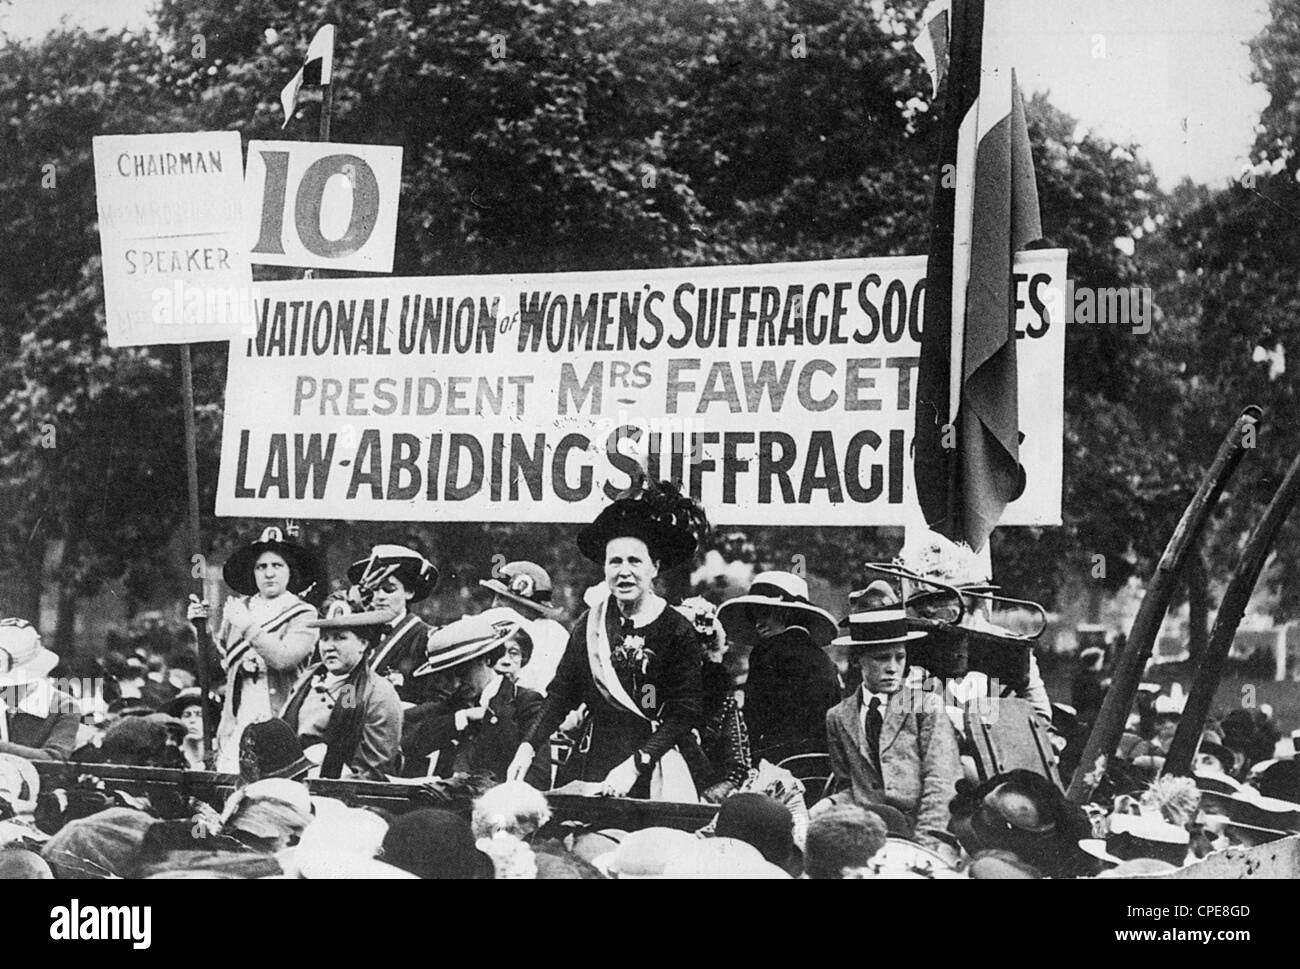 MILLICENT FAWCETT (1847-1929) English suffragist at a Hyde Park rally about 1915 - Stock Image